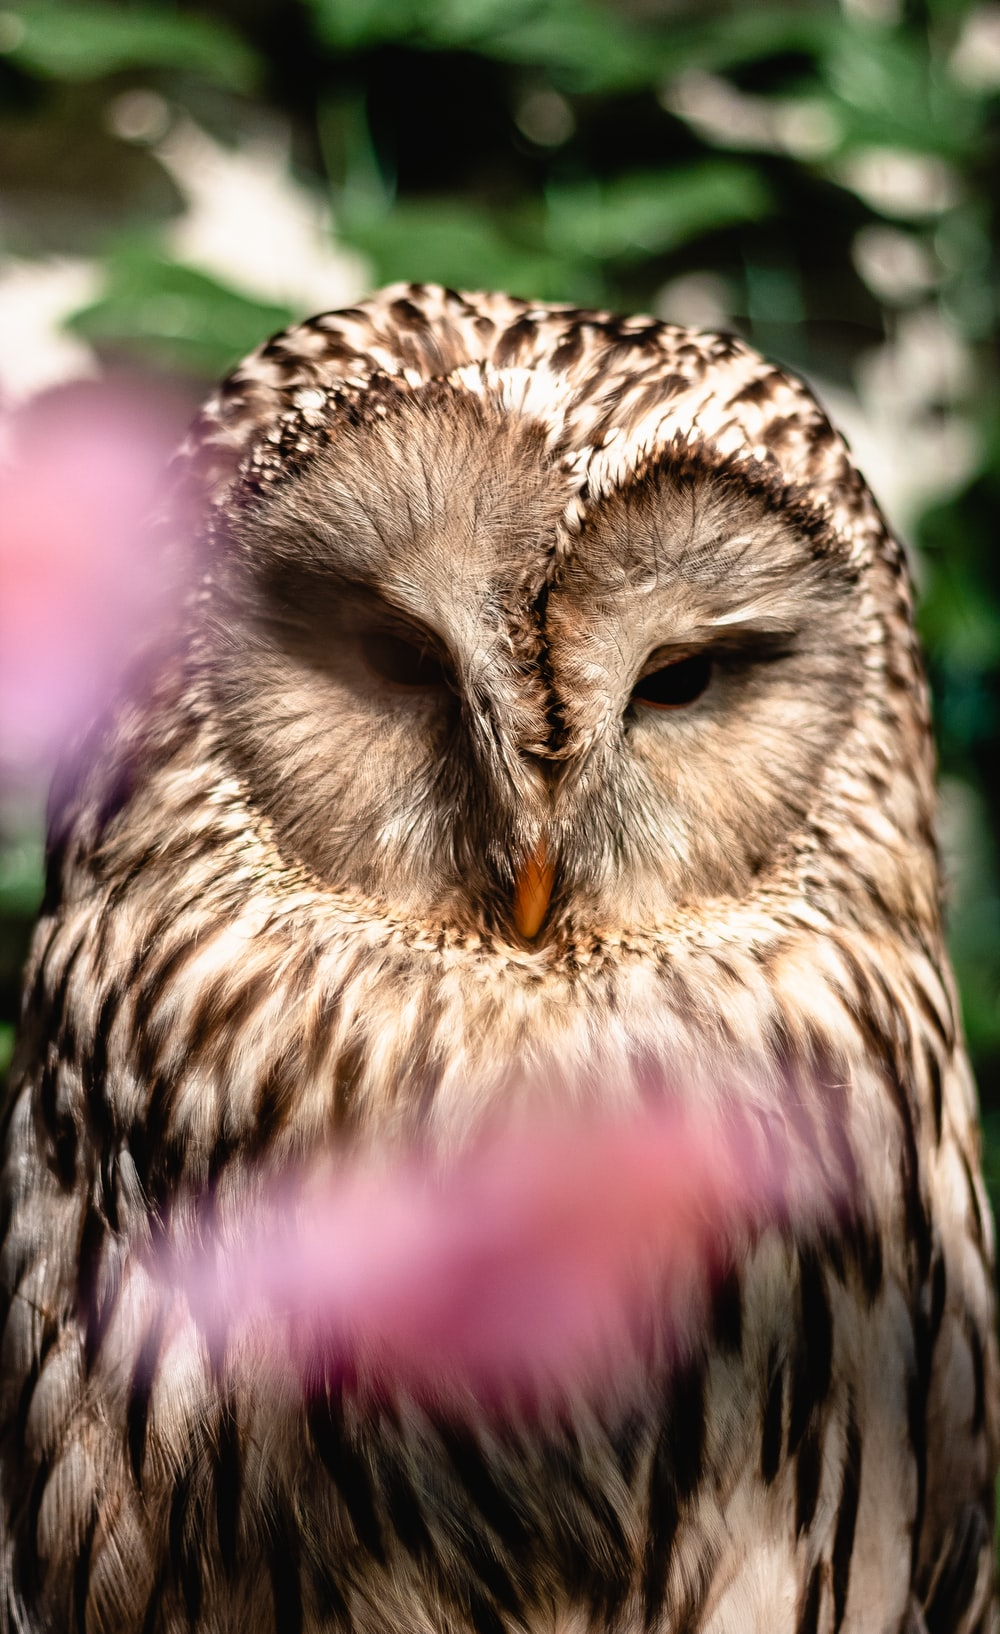 selected focus photo of brown owl